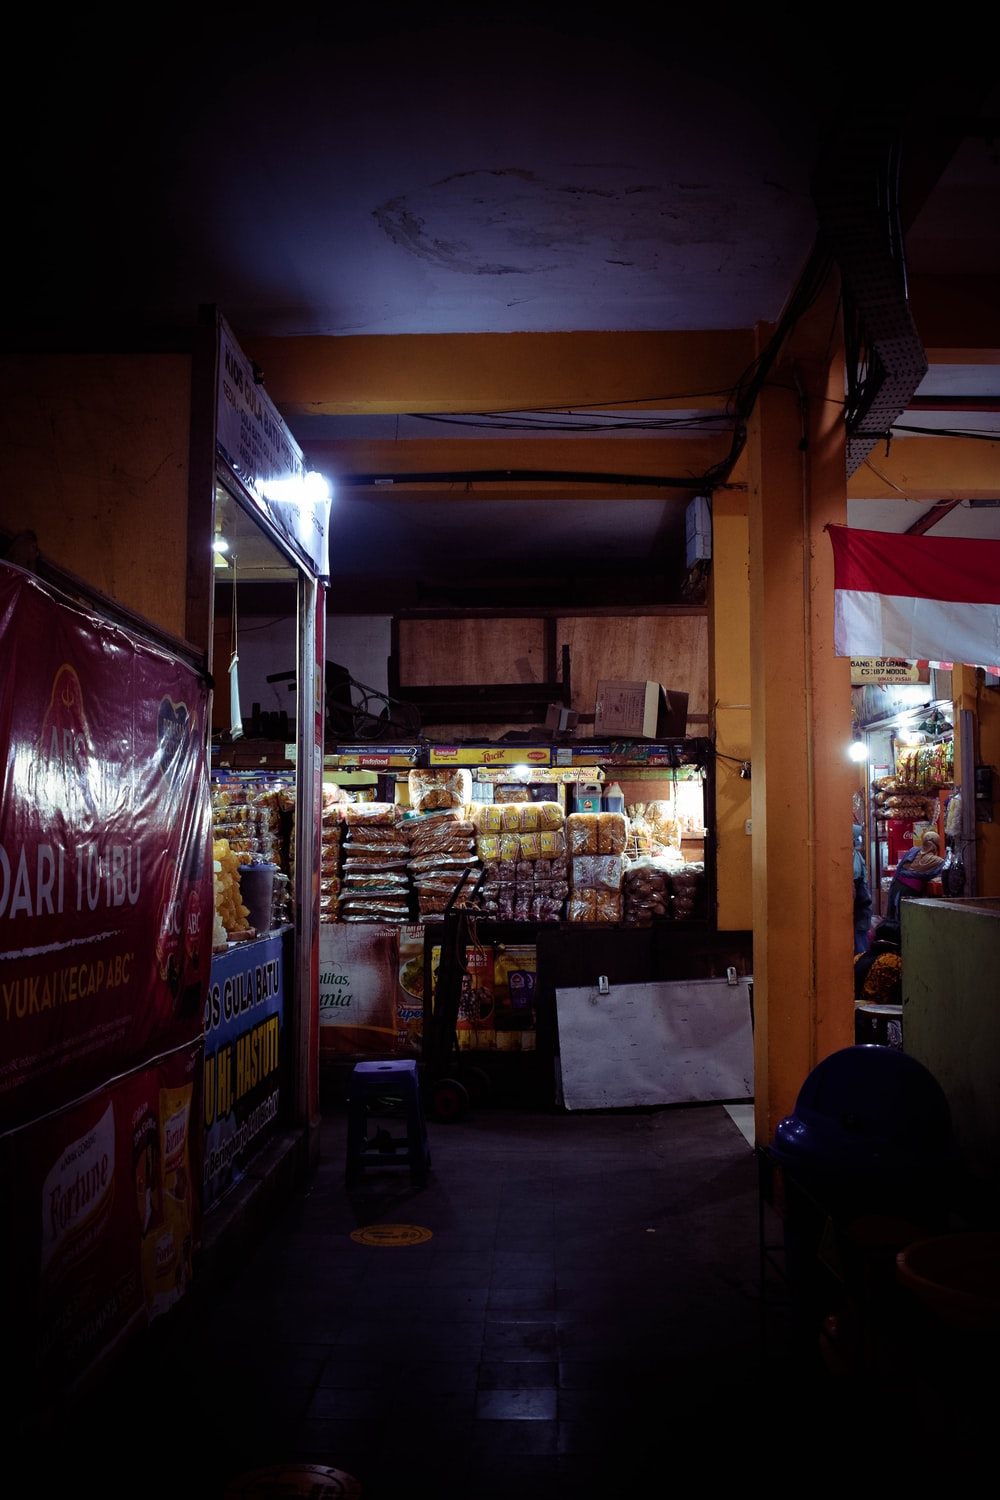 store with lights turned on during night time